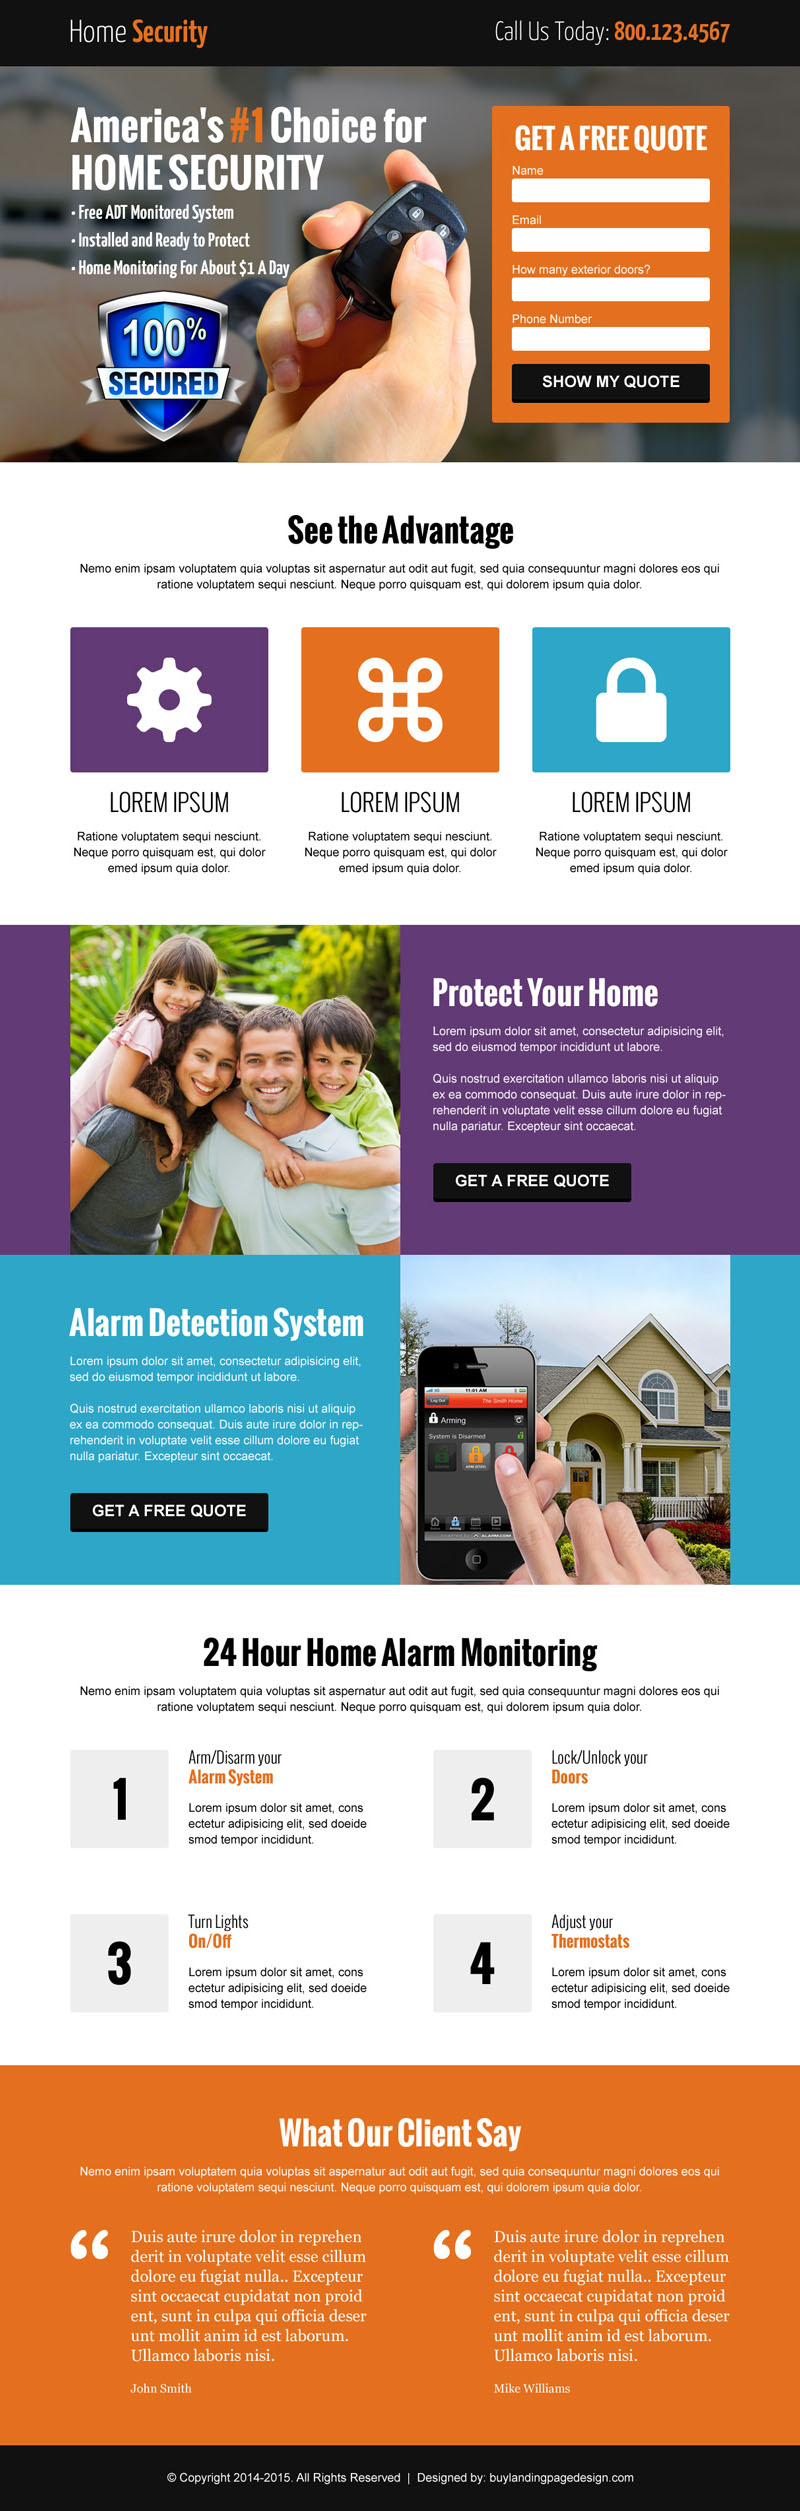 home-security-free-quote-service-lead-capture-landing-page-design-template-002